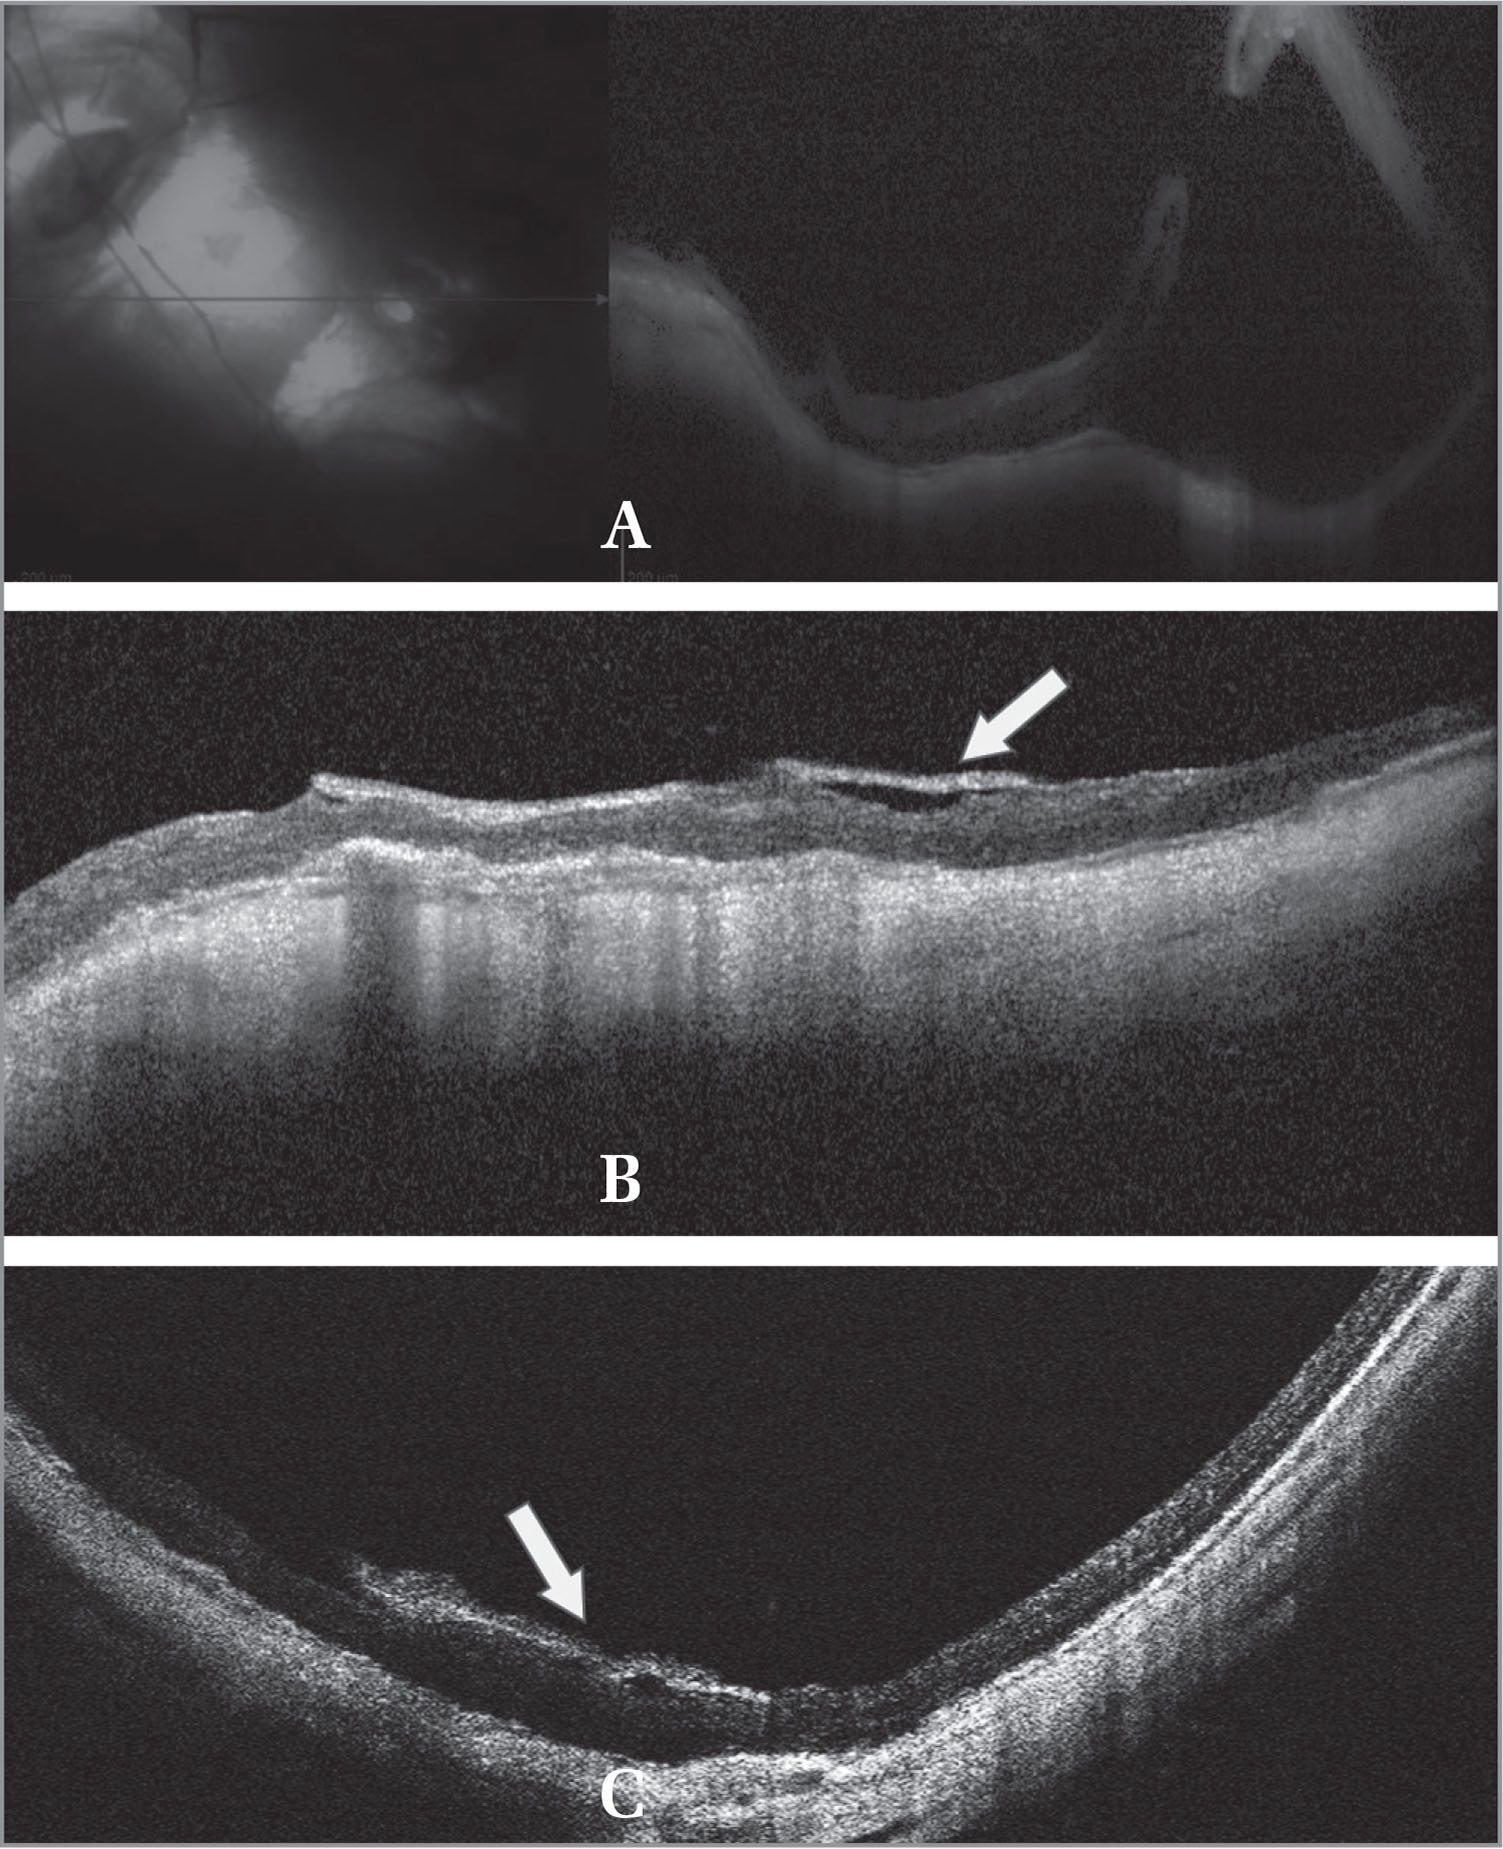 (A) Preoperative spectral-domain optical coherence tomography (SD-OCT) image showing recurrent retinal detachment (RD) with macular hole (MH). (B) One-month follow-up SD-OCT image of the macular area with sealed myopic MH-associated RD and overlying amniotic membrane graft (AMG) with good apposition to the edges of the MMH (white arrow). (C) Six-month follow-up SD-OCT image of the macular area with maintained sealed MMH and AMG starting to dissolve but still seen in place (white arrow).